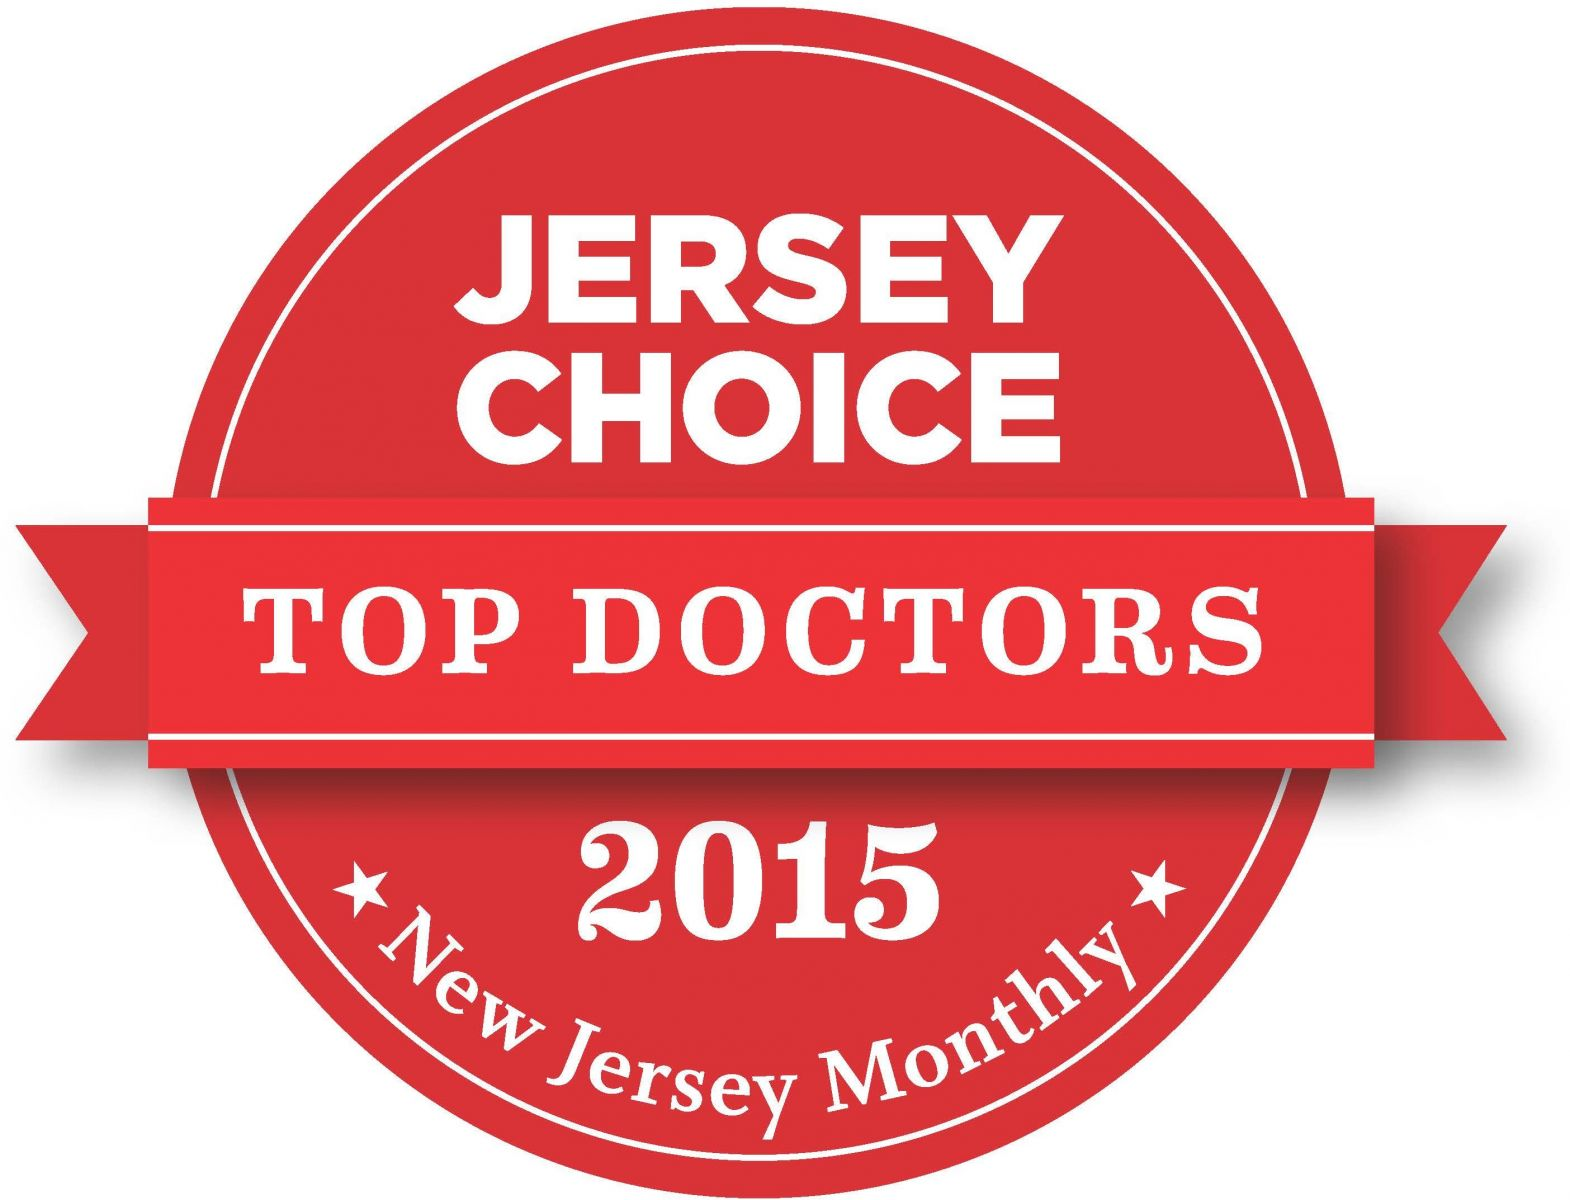 Jersey Choice Top Doctor 2015